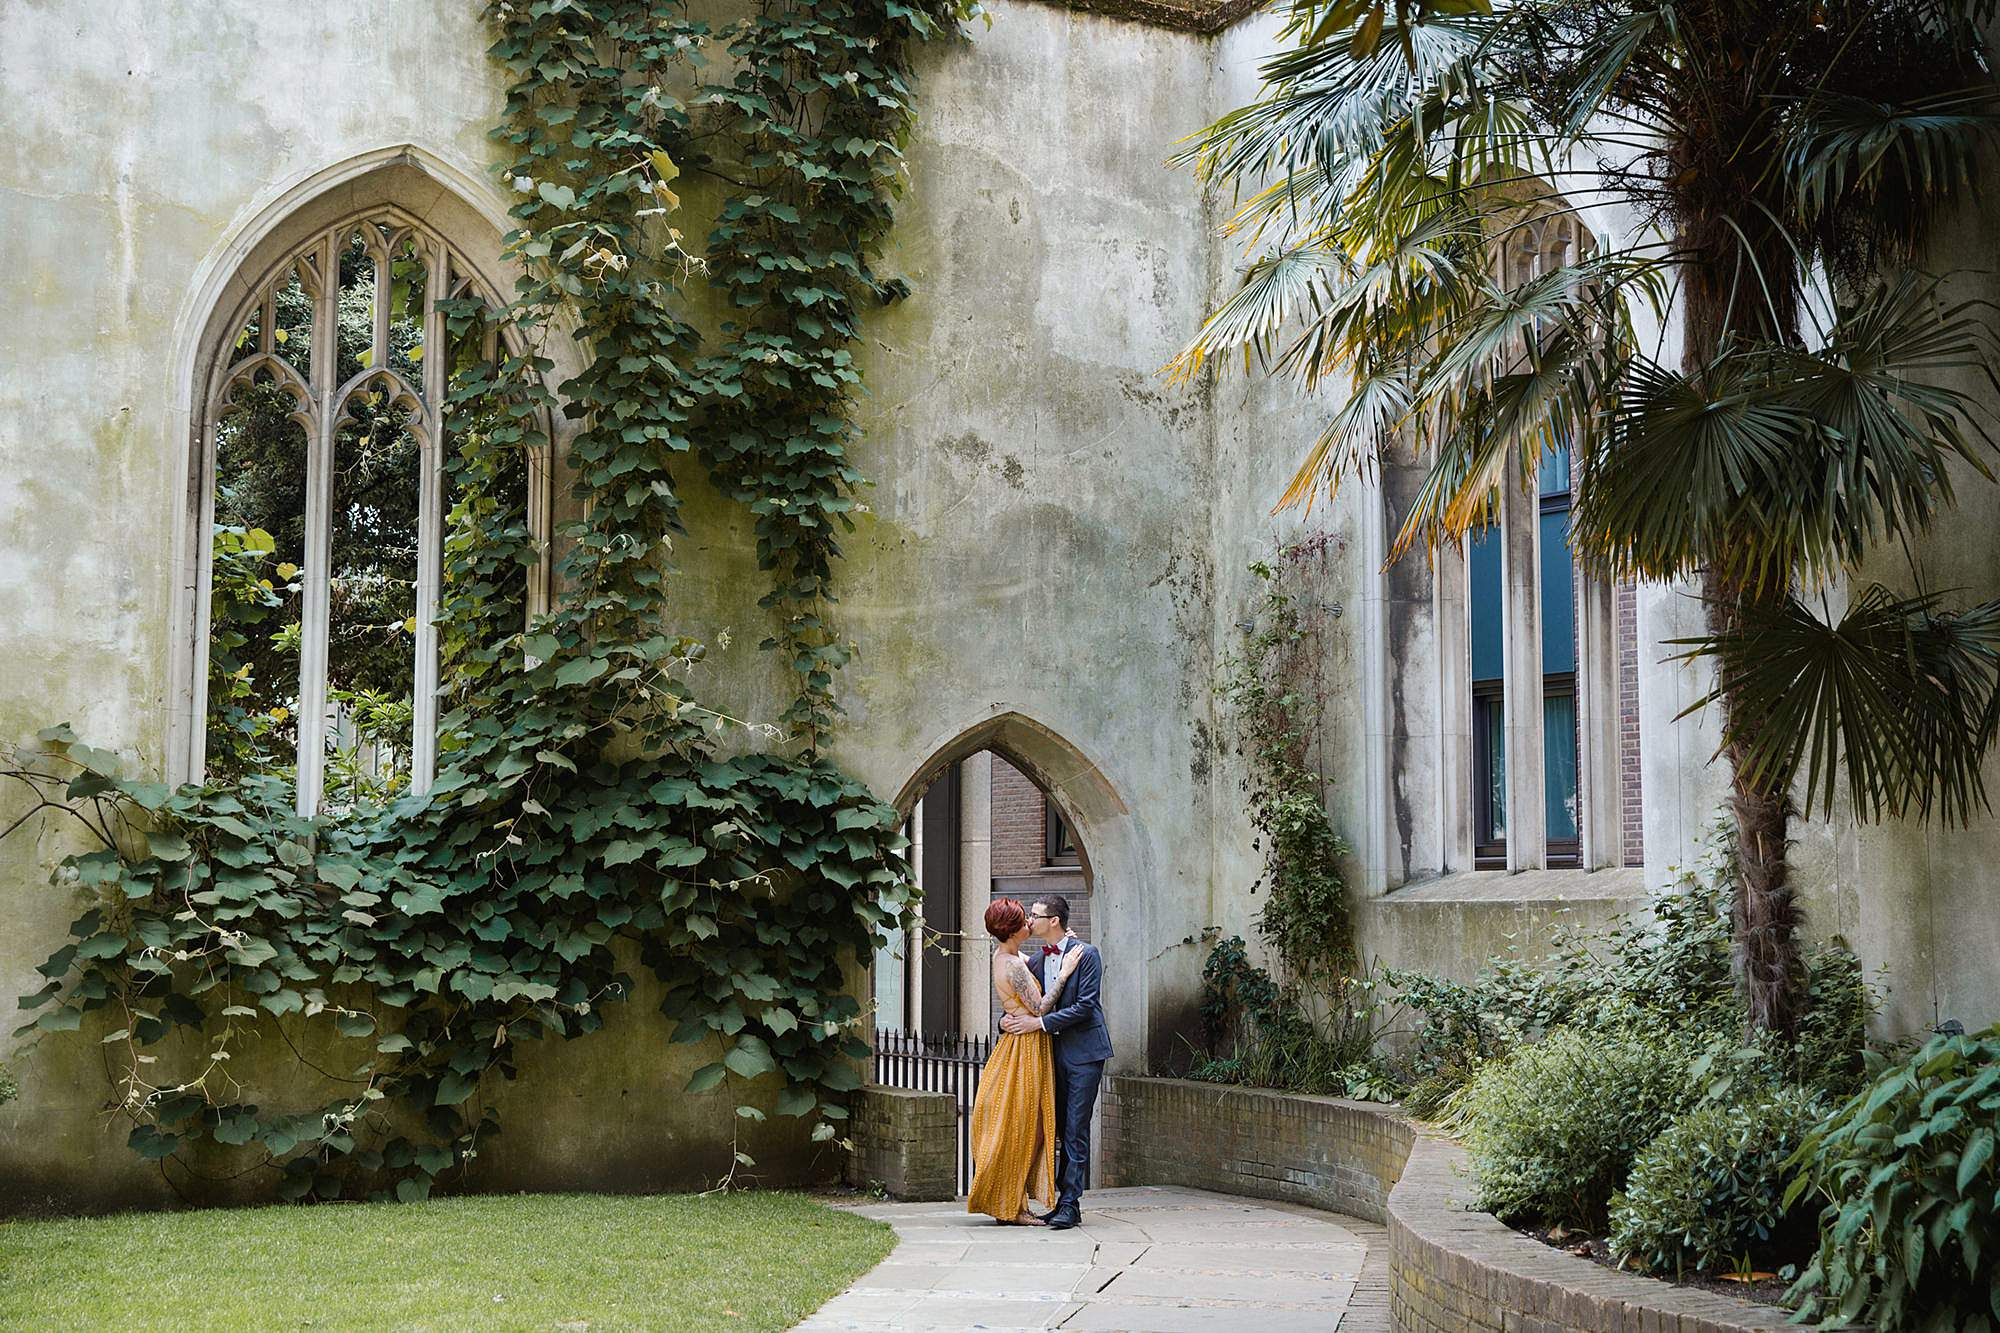 london engagement session couple in grounds of church